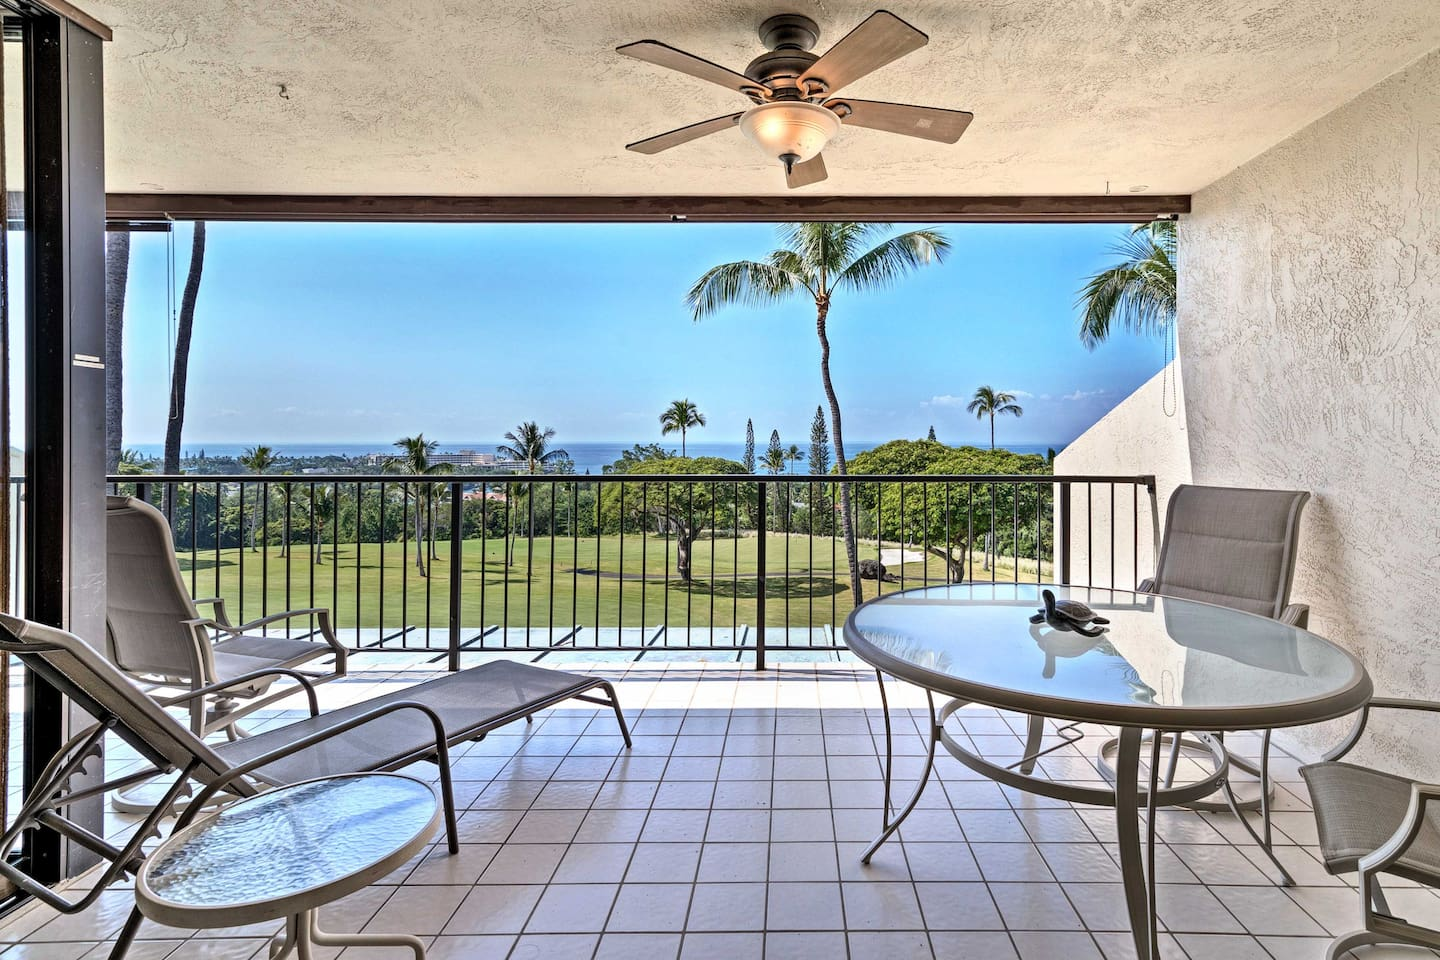 This 2BR, 2-bath Kailua-Kona condo is the perfect spot to enjoy island living.